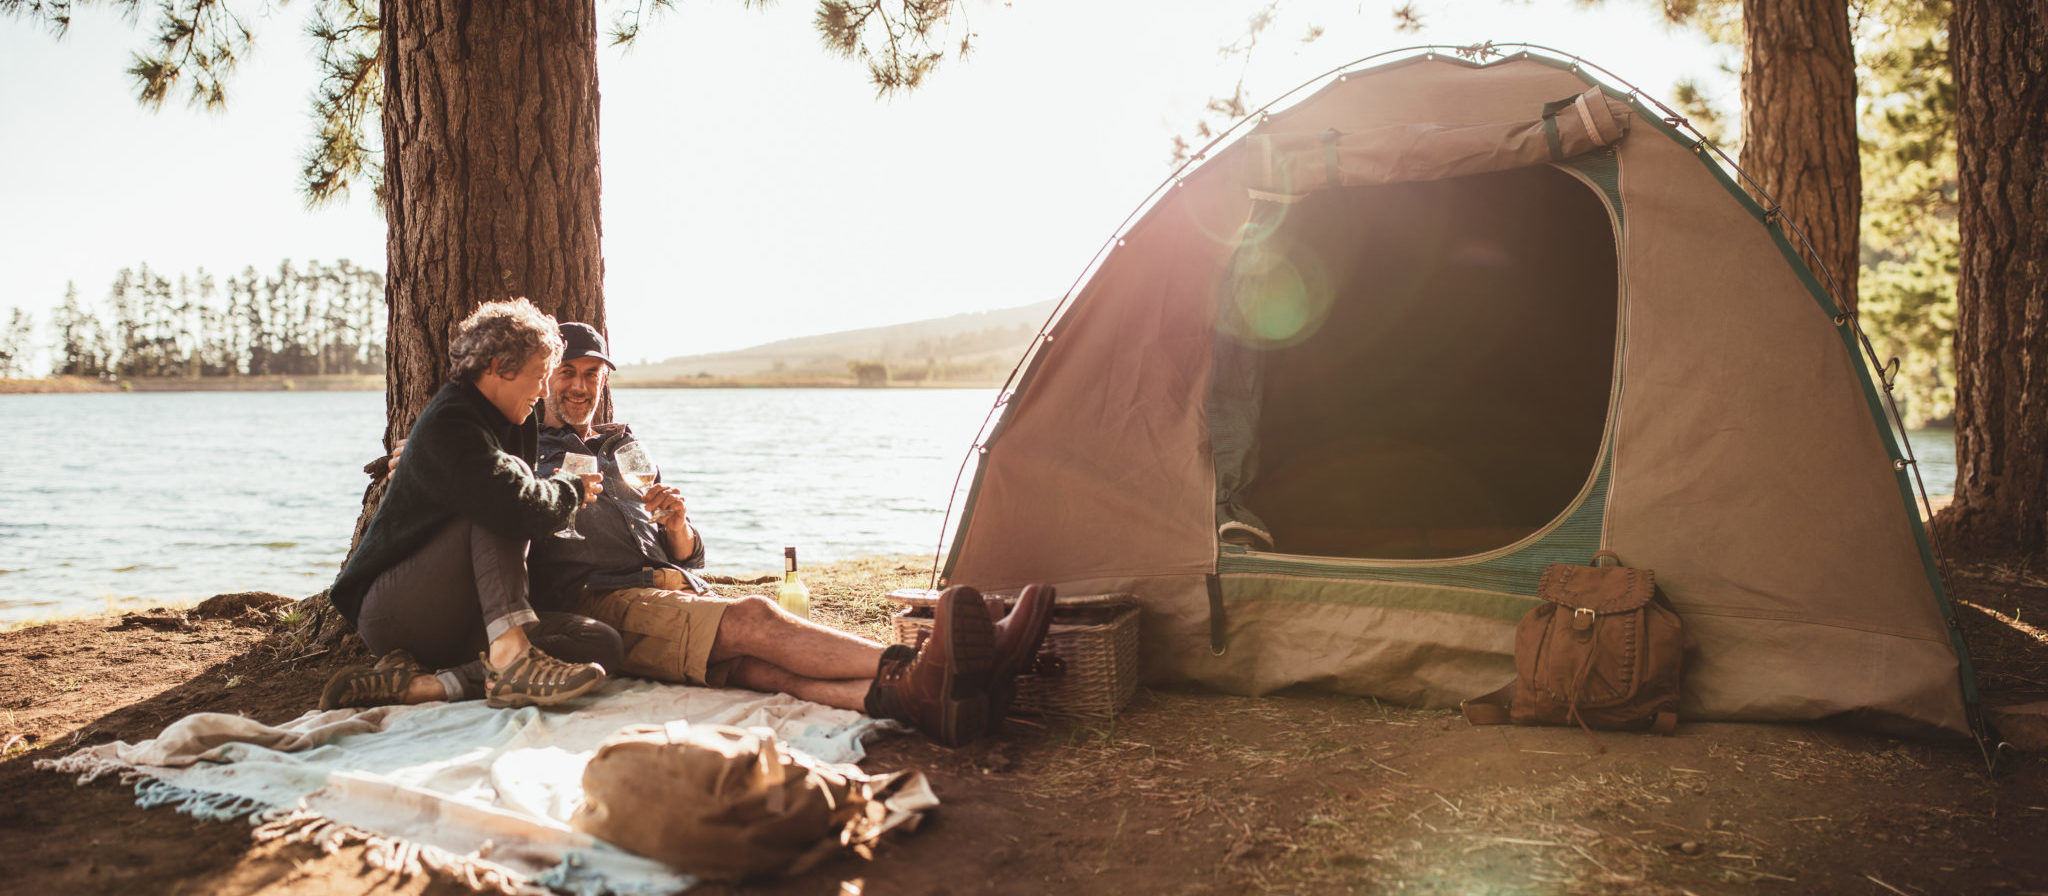 A camping trip is one of the most fantastic ways to spend some quality time with a loved one.